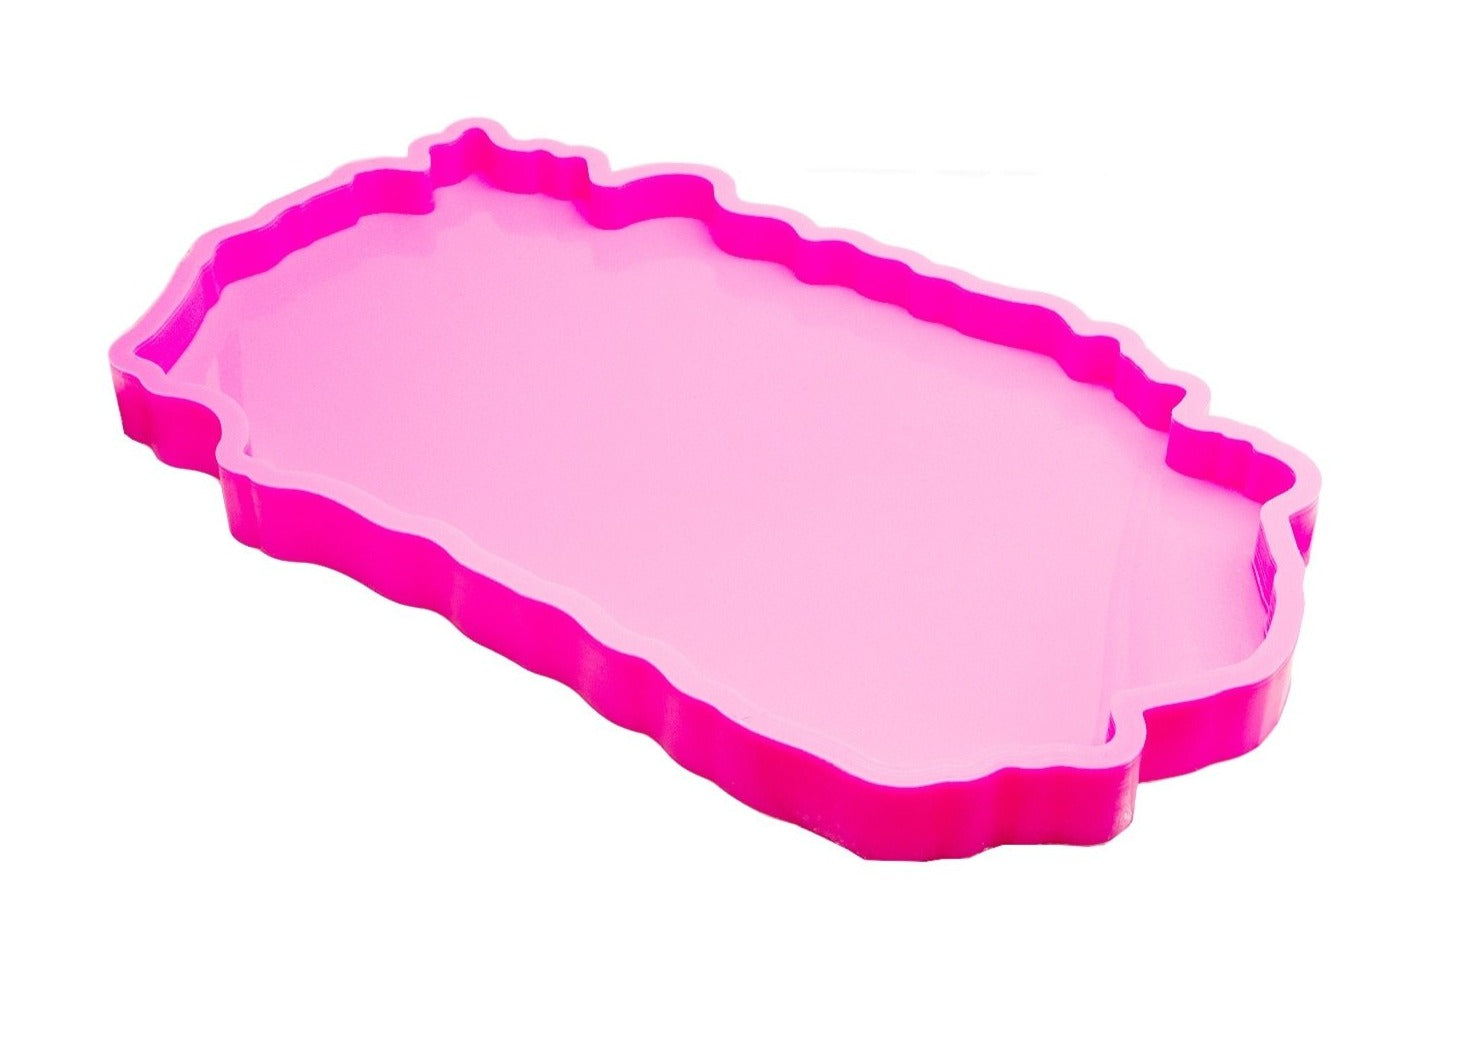 resin geode agate tray mold shiny high glossy mould